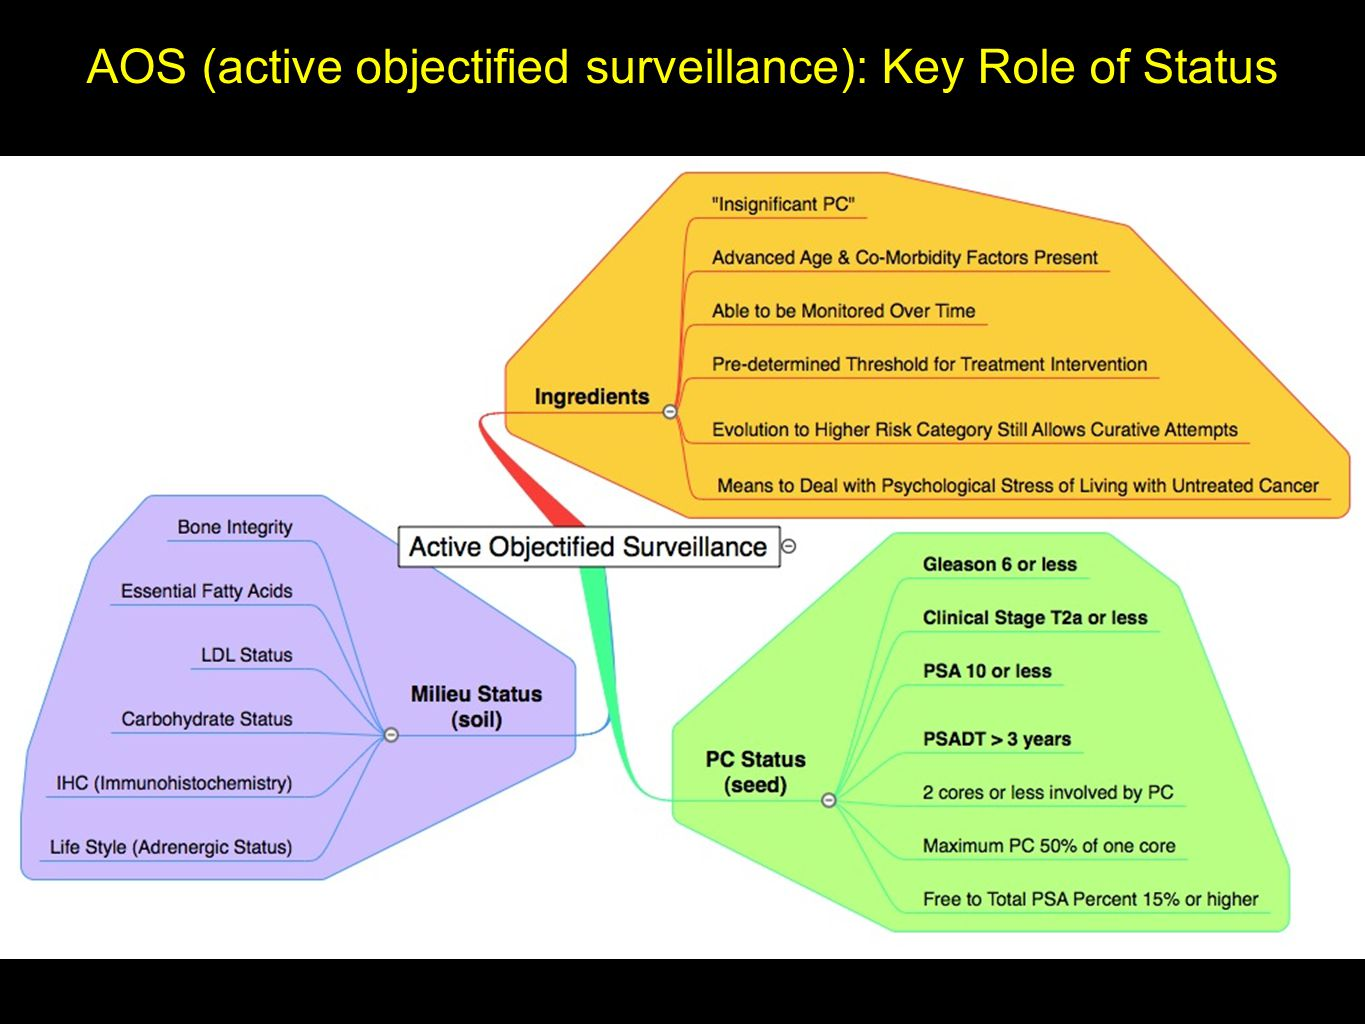 AOS (active objectified surveillance): Key Role of Status